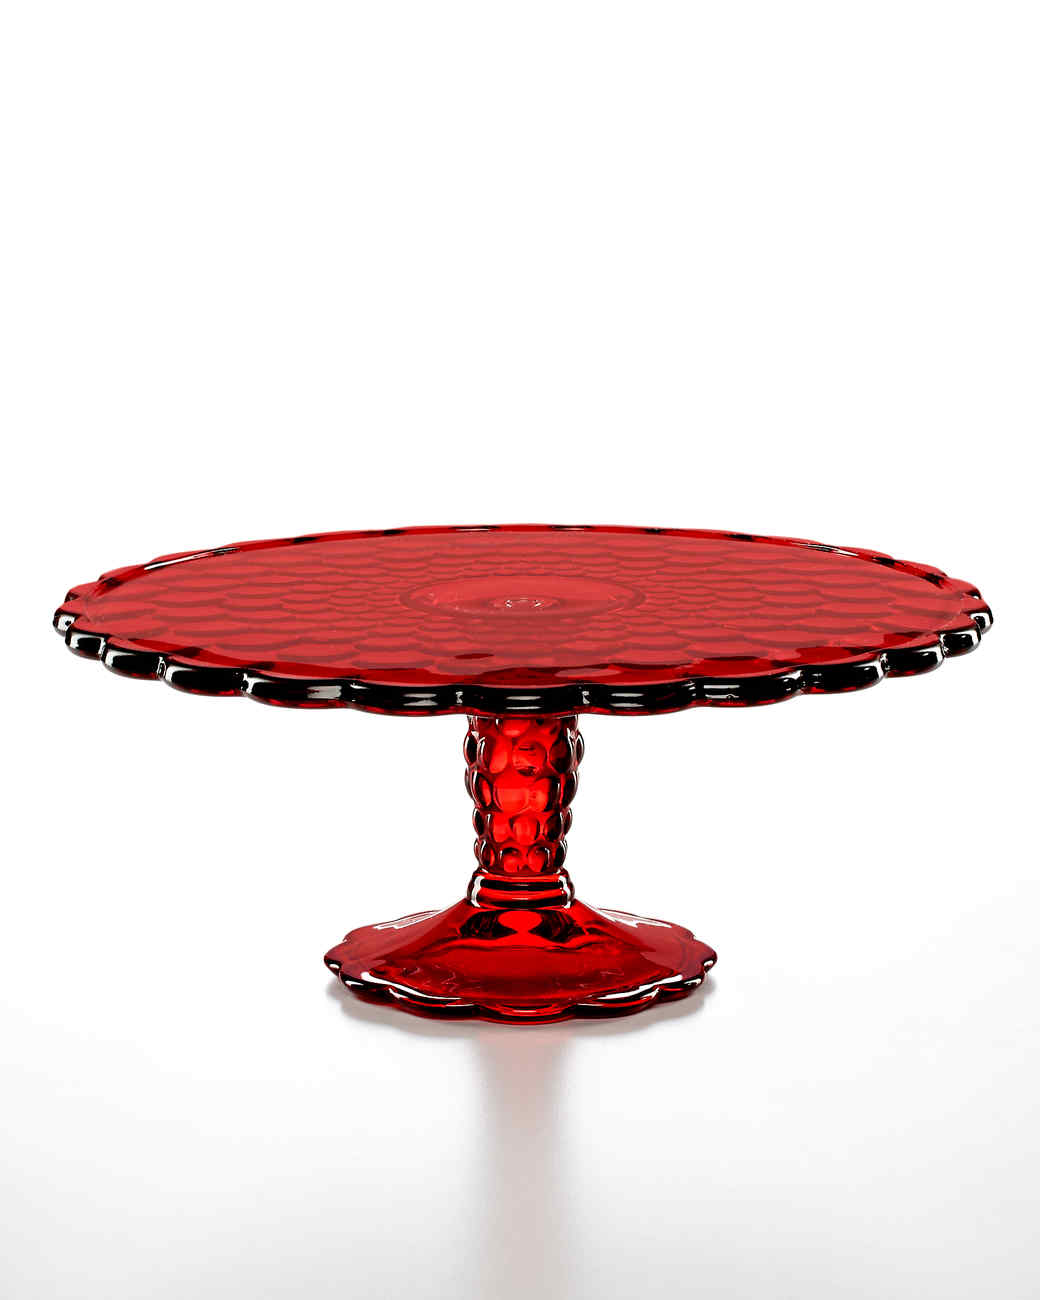 msmacys-red-glass-cakestand-mrkt-1013.jpg